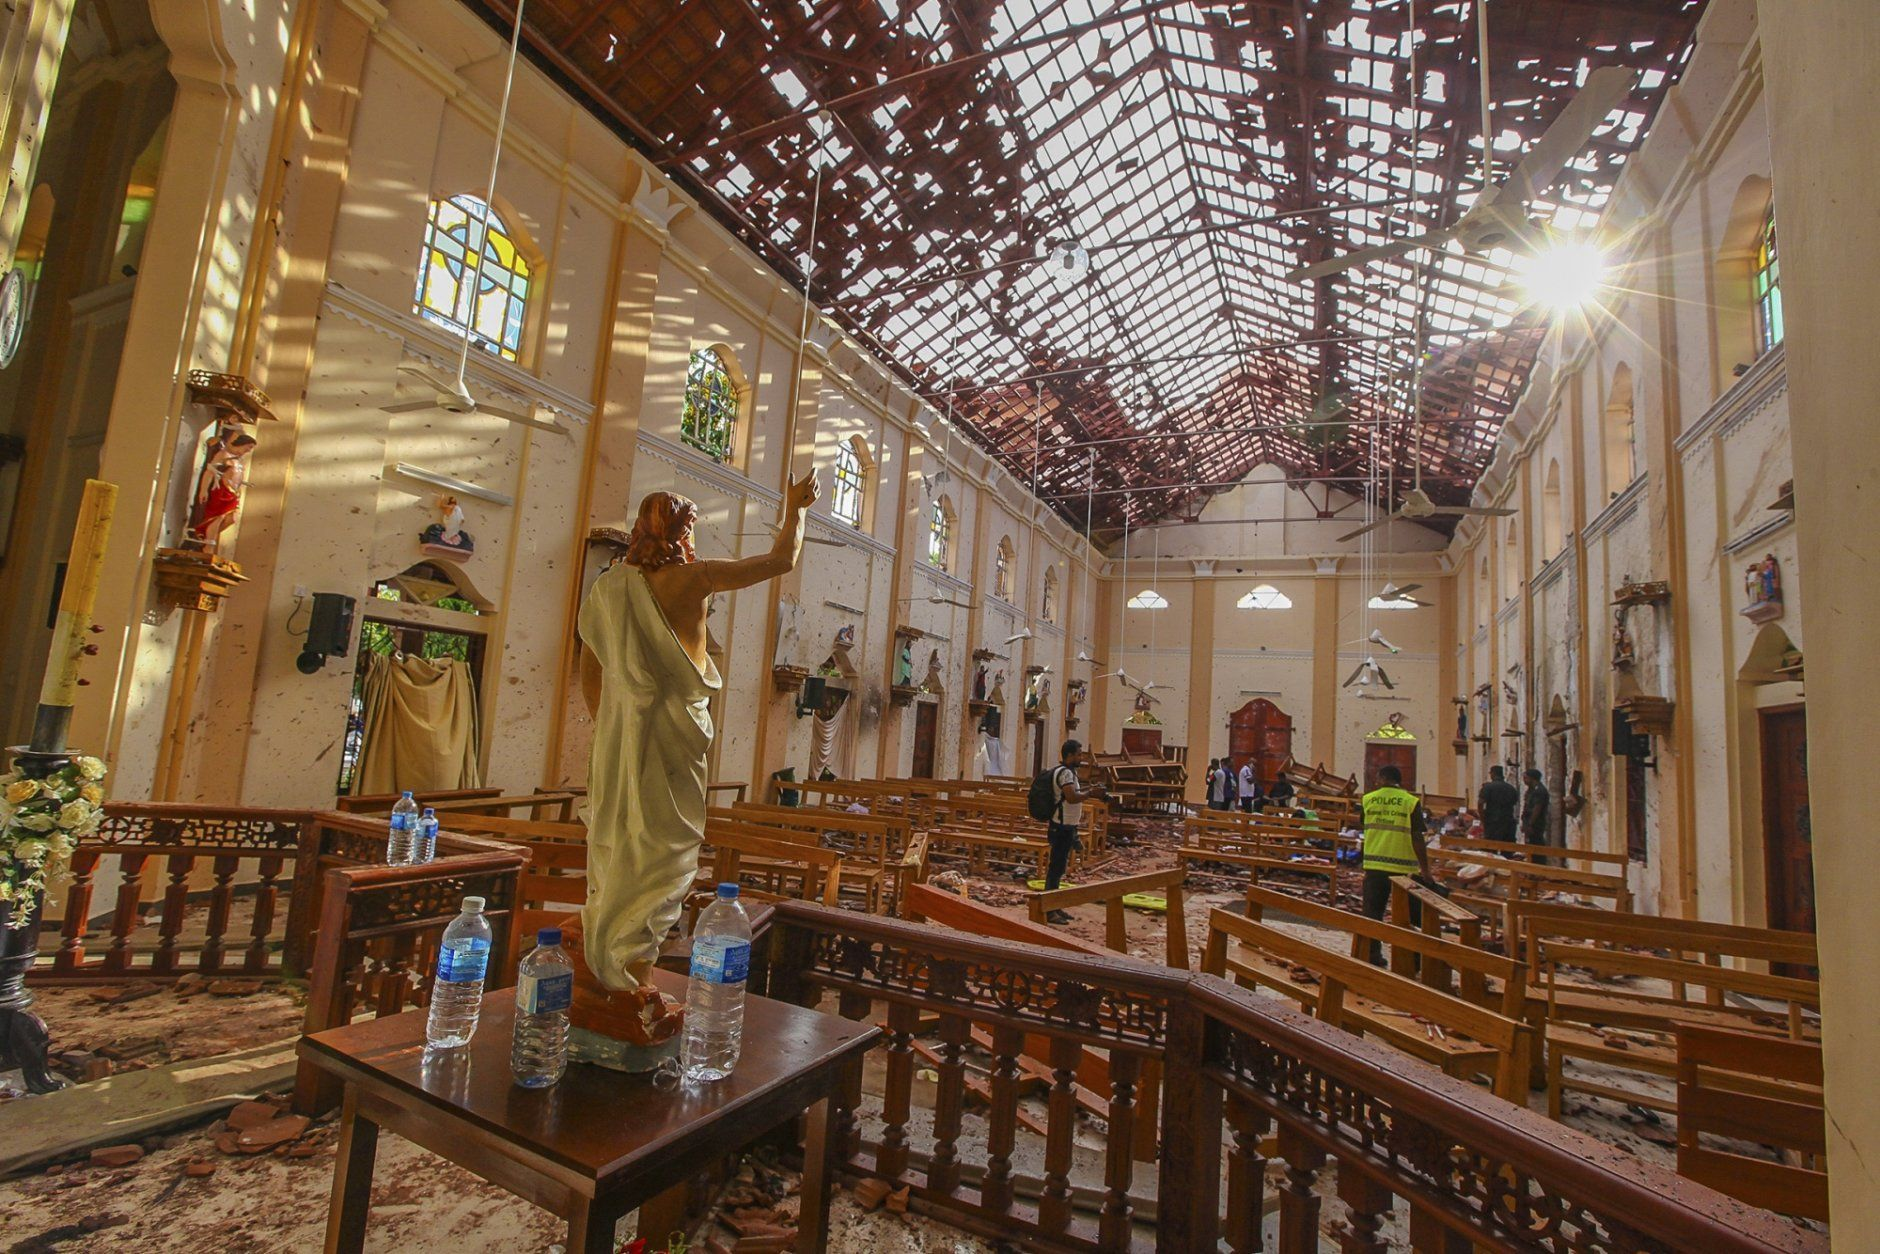 A view of St. Sebastian's Church damaged in blast in Negombo, north of Colombo, Sri Lanka, Sunday, April 21, 2019.  More than hundred were killed and hundreds more hospitalized with injuries from eight blasts that rocked churches and hotels in and just outside of Sri Lanka's capital on Easter Sunday, officials said, the worst violence to hit the South Asian country since its civil war ended a decade ago. (AP Photo/Chamila Karunarathne)